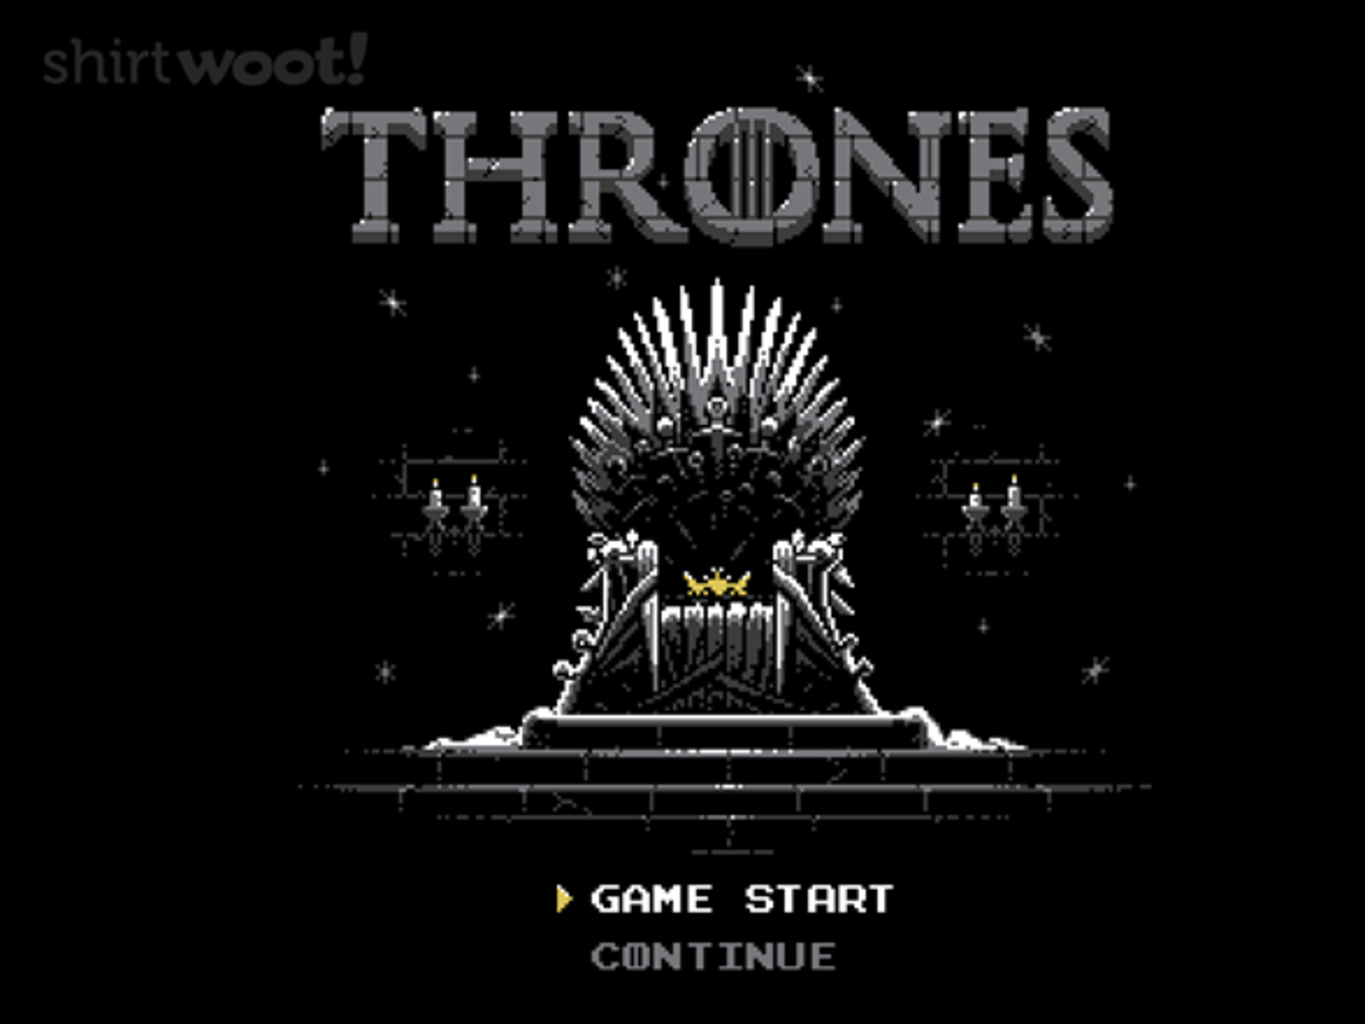 Woot!: That Thrones Game